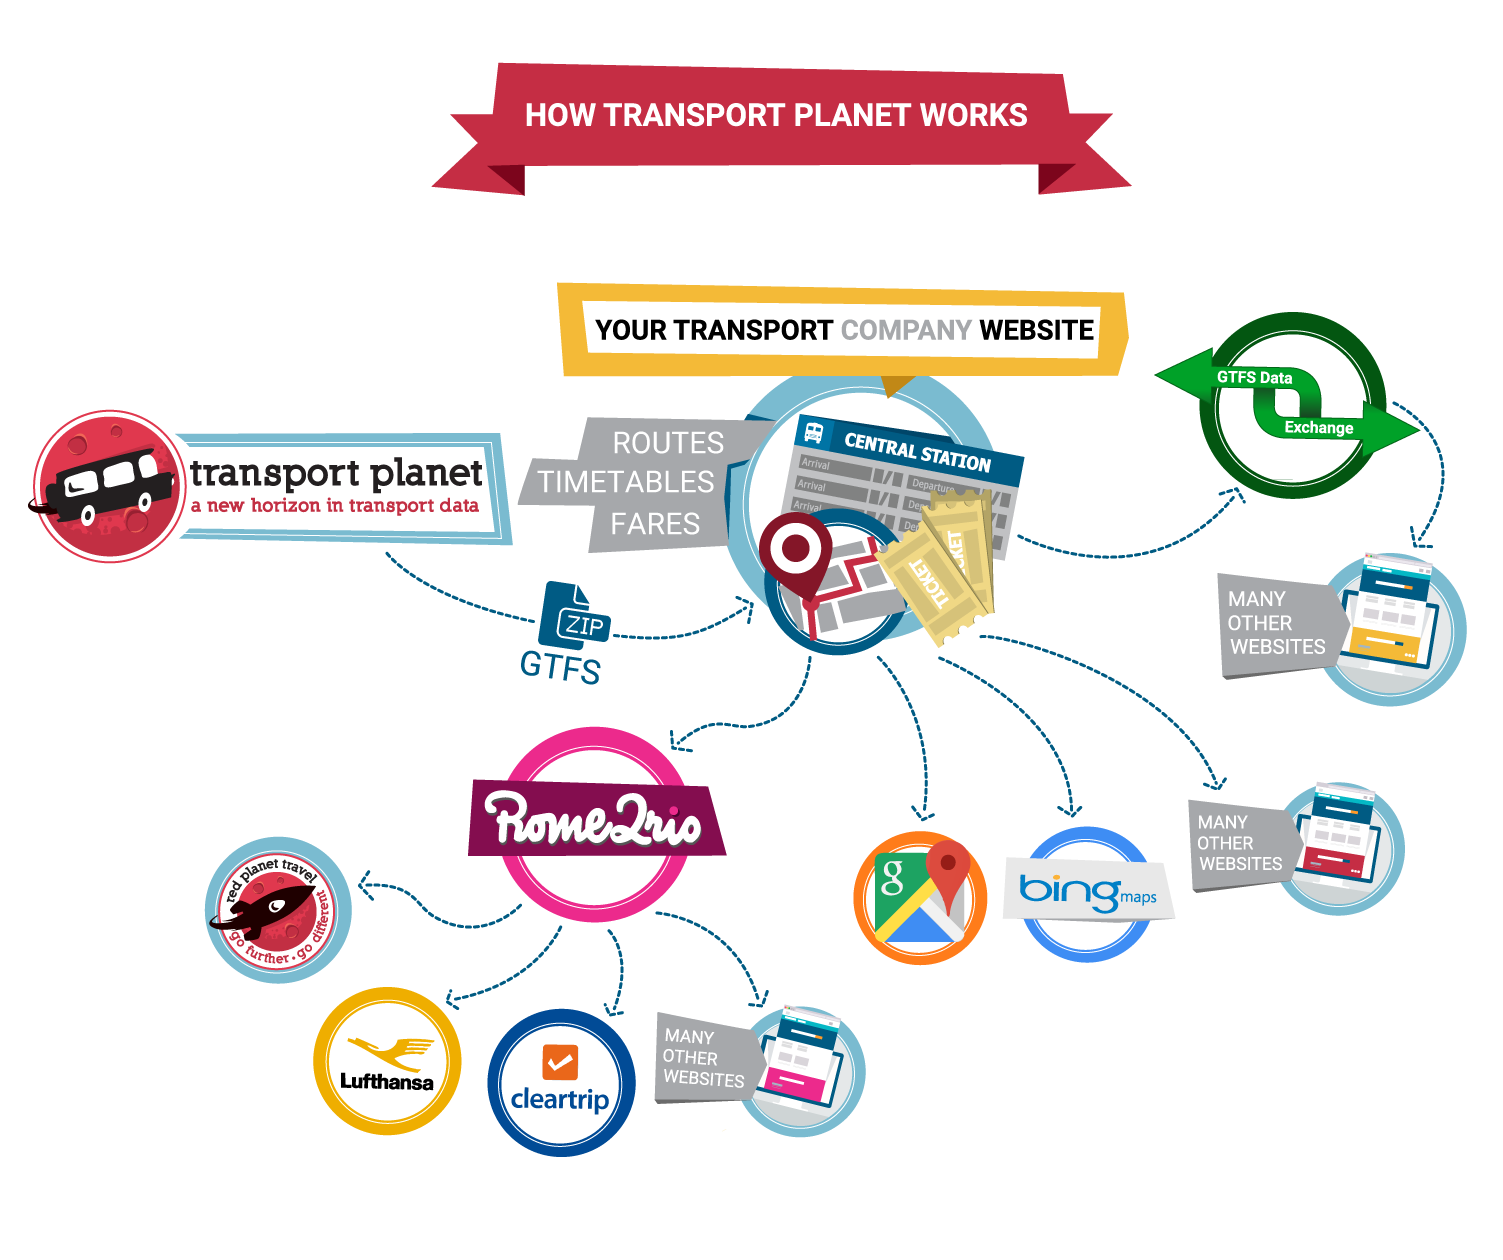 How Transport Planet Works